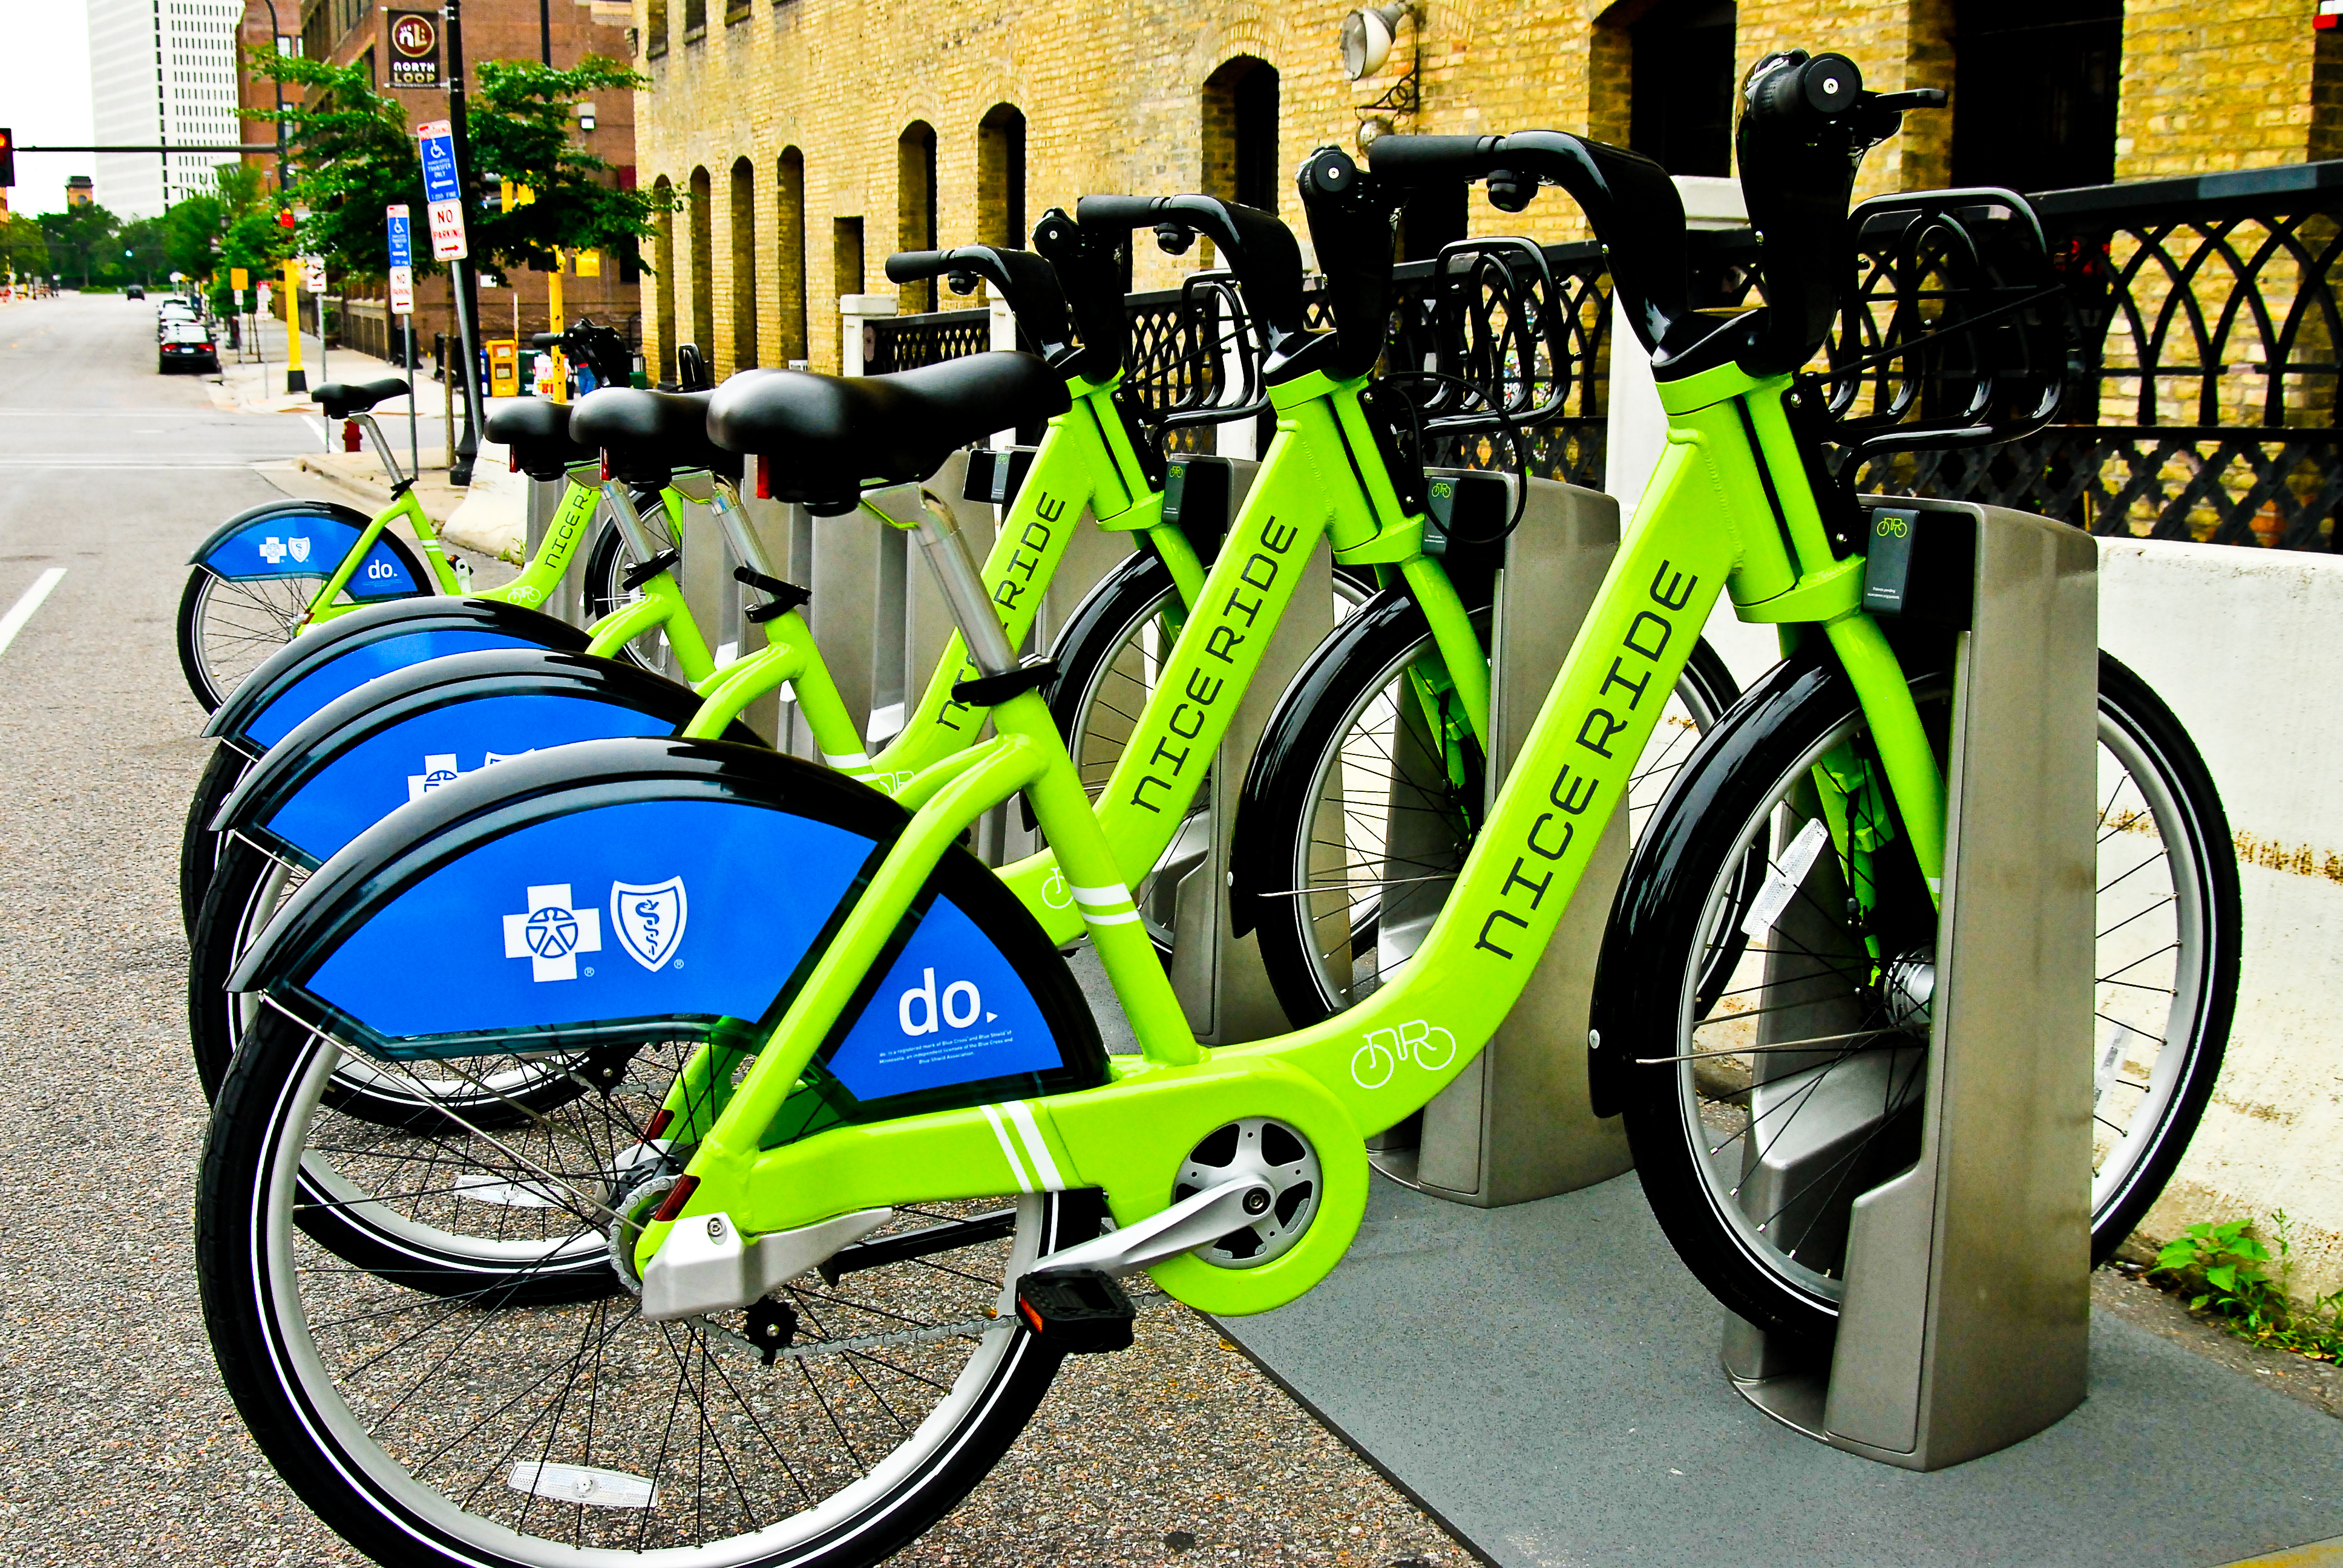 Bikes Minneapolis Nice Ride Bike Kiosk jpg